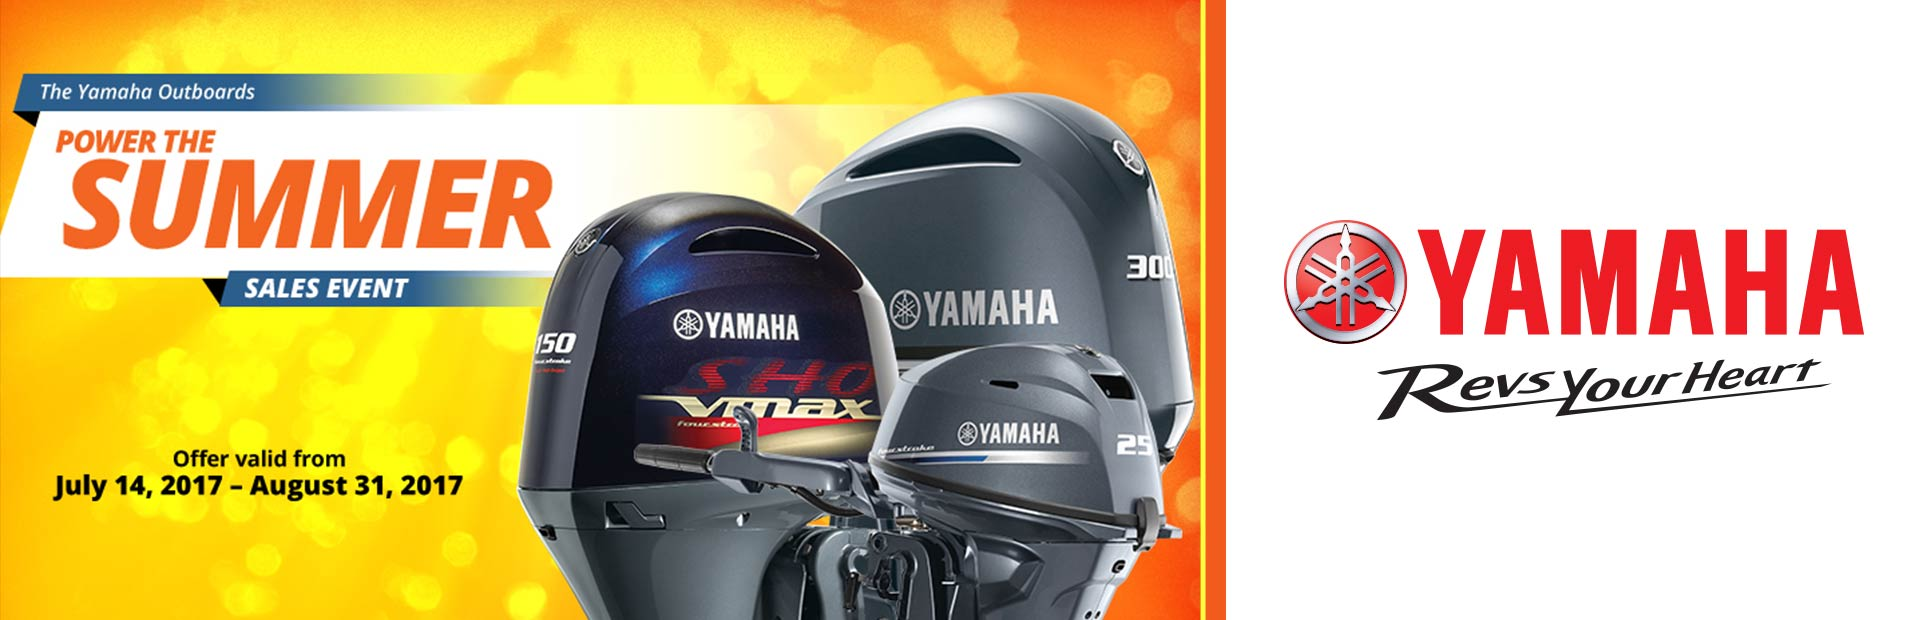 Yamaha: Power The Summer Sales Event